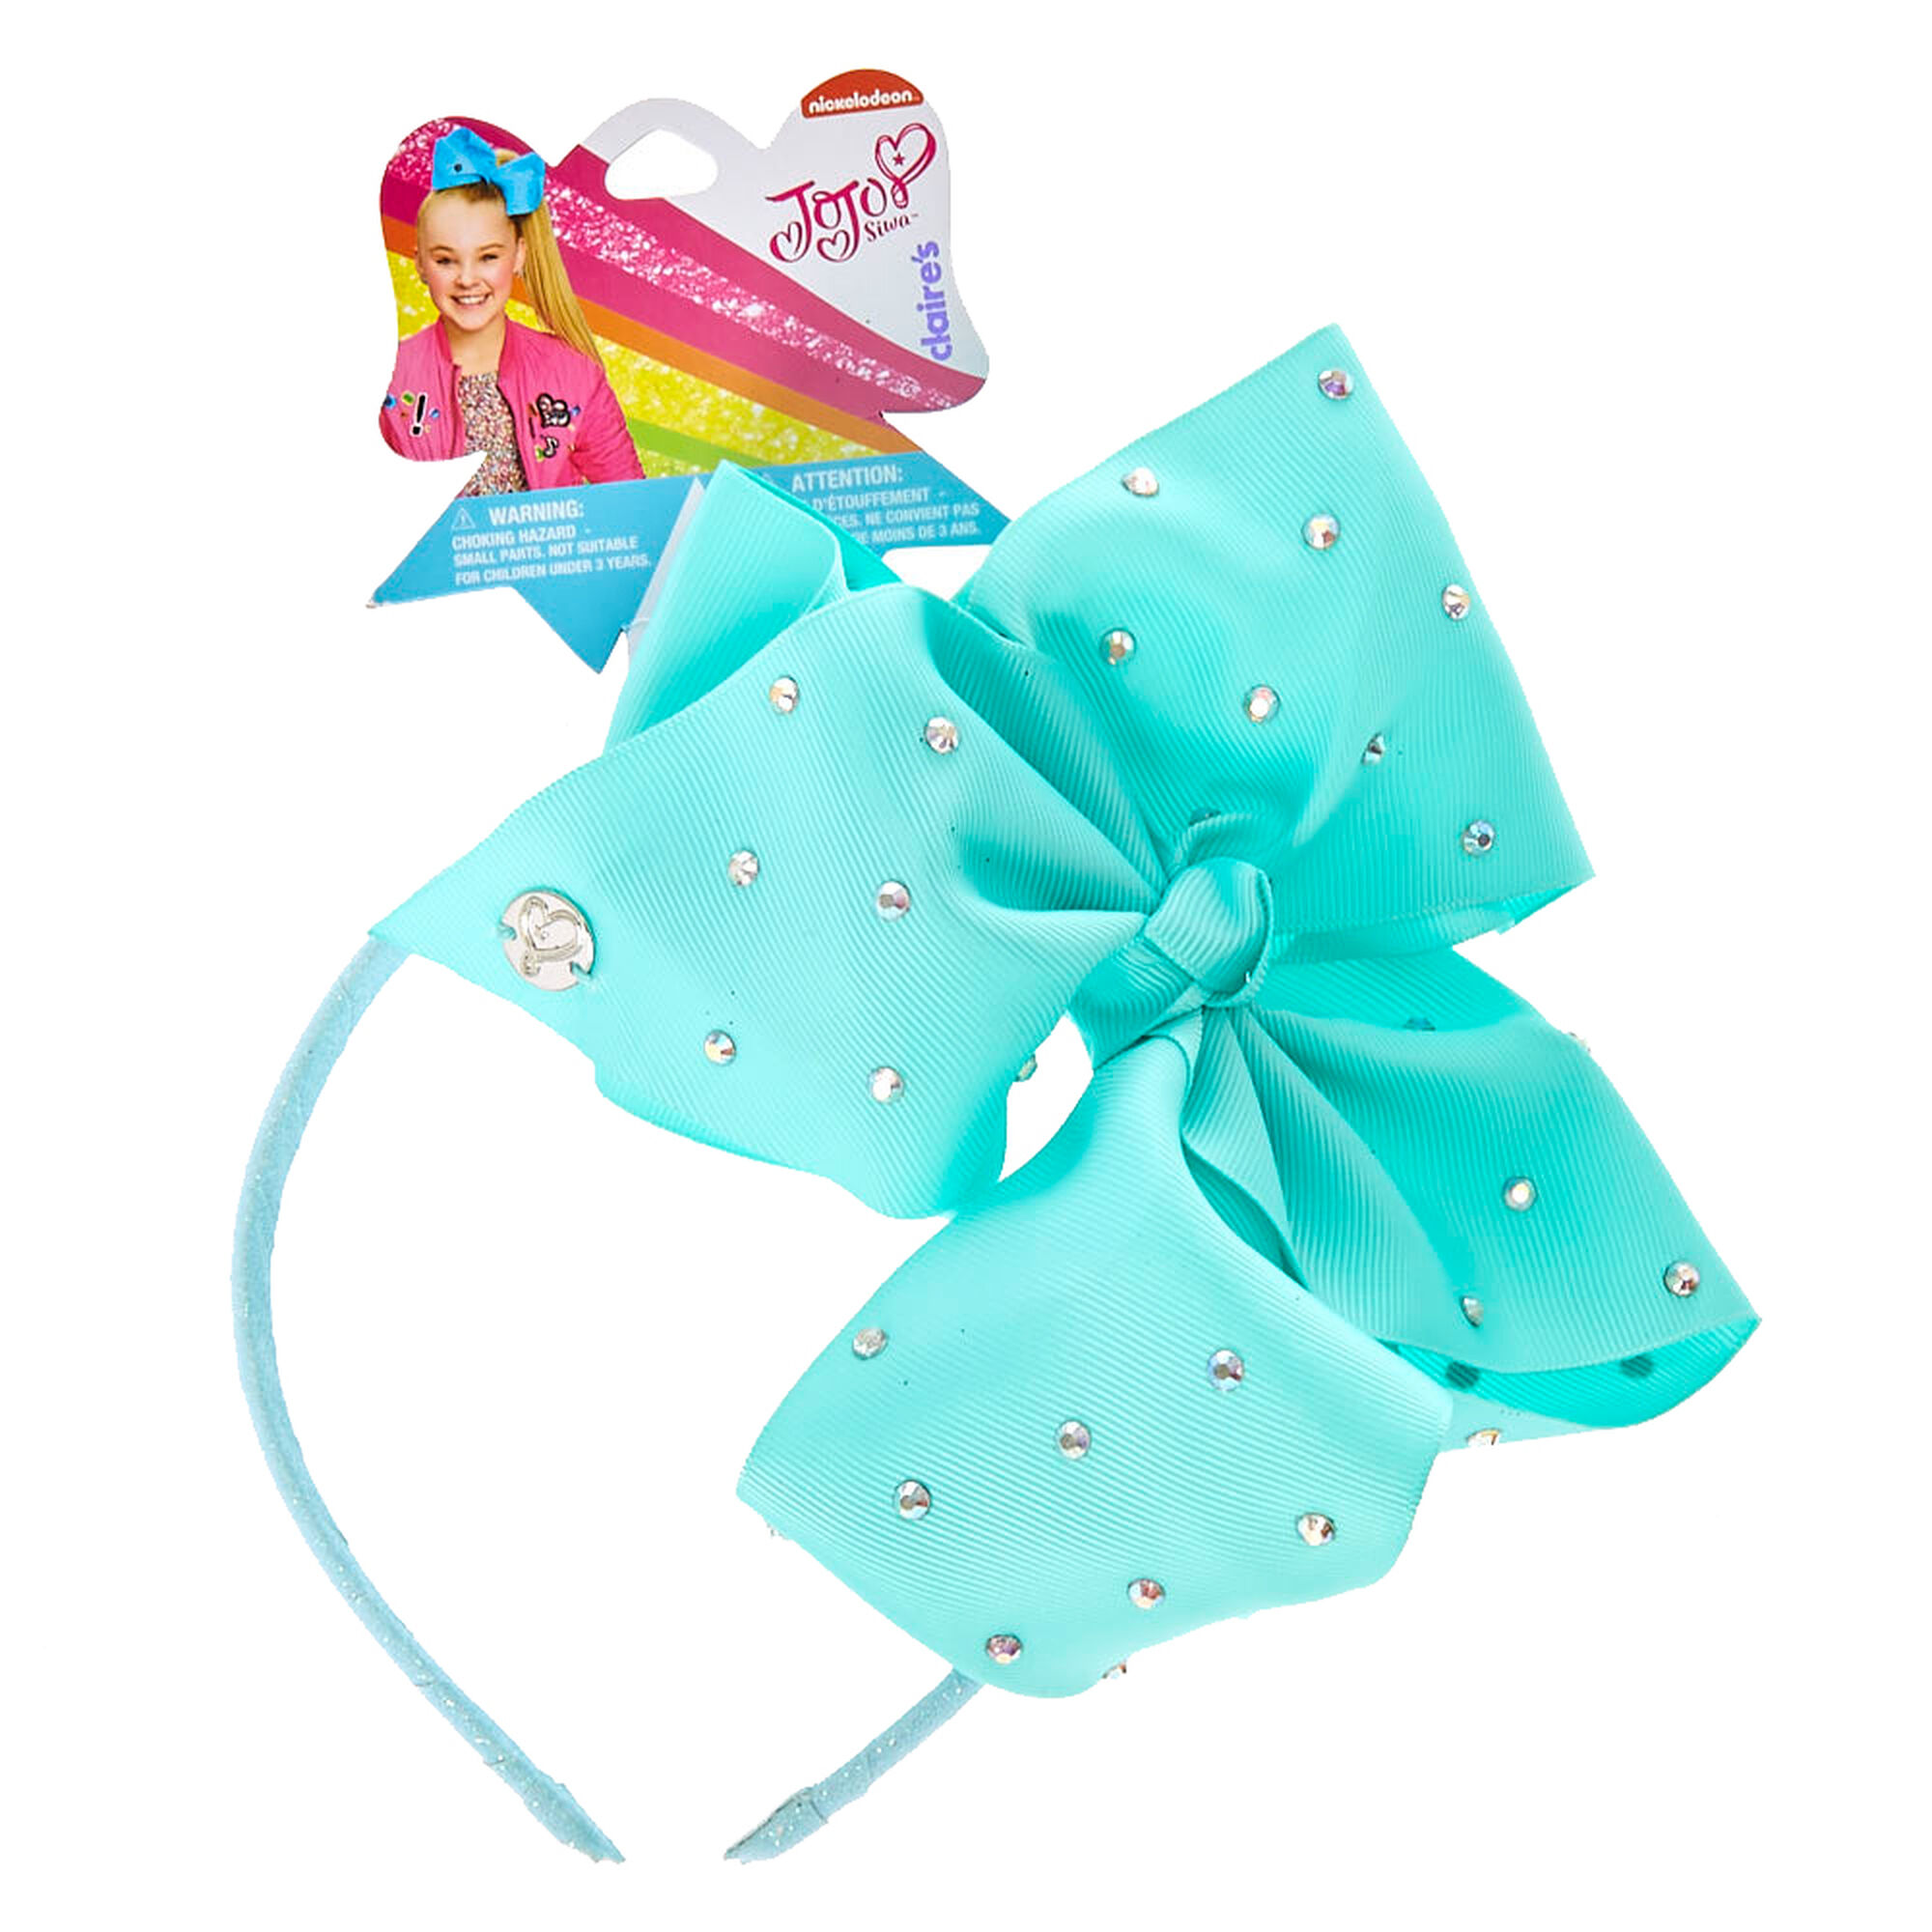 Shop Claire's for the latest trends in jewelry & accessories for girls, teens, & tweens. Find must-have hair accessories, stylish beauty products & more. Claire's.